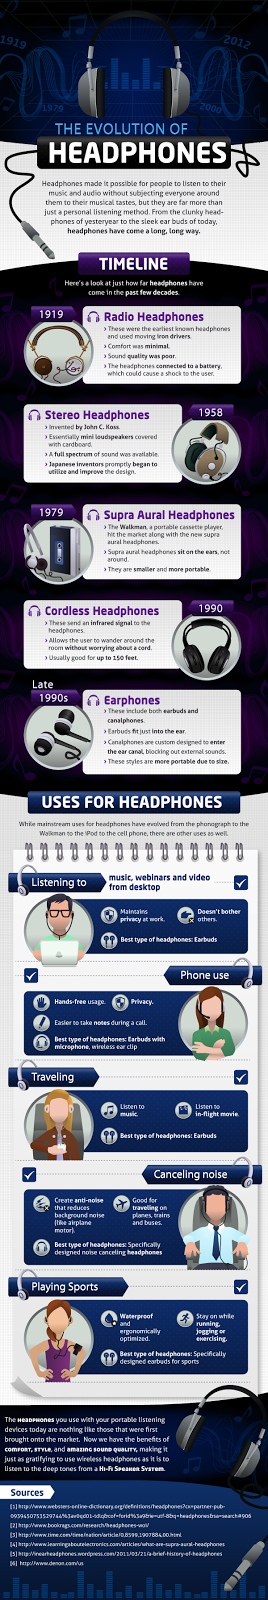 Evolution of Headphones Infographic from Bobby Owsinski's Big Picture blog